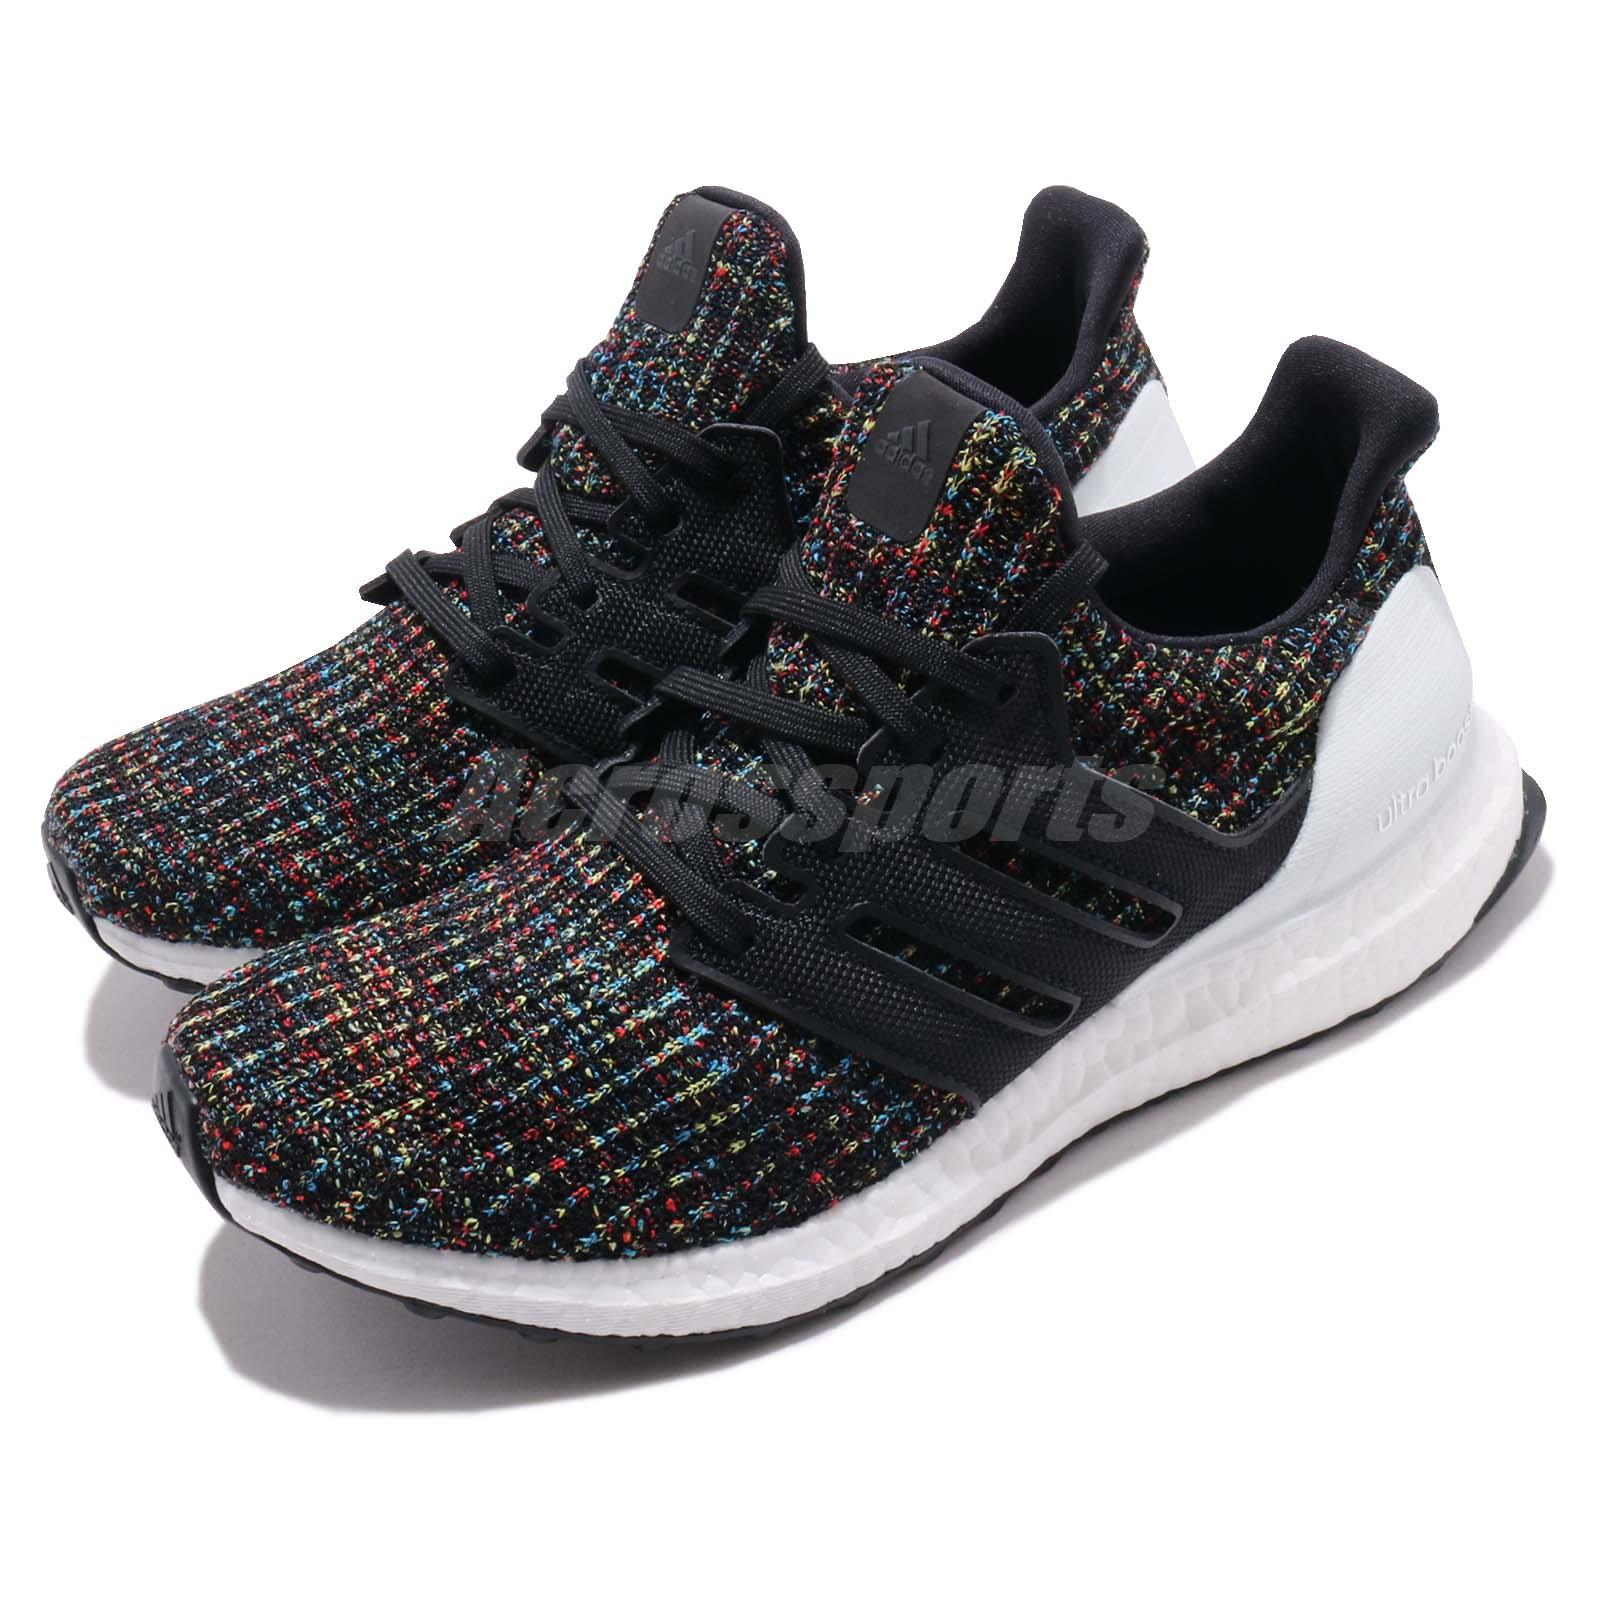 watch 06fc3 405b5 Details about adidas UltraBOOST 4.0 Black Multi-Color White Mens Running  Shoes BOOST F35232